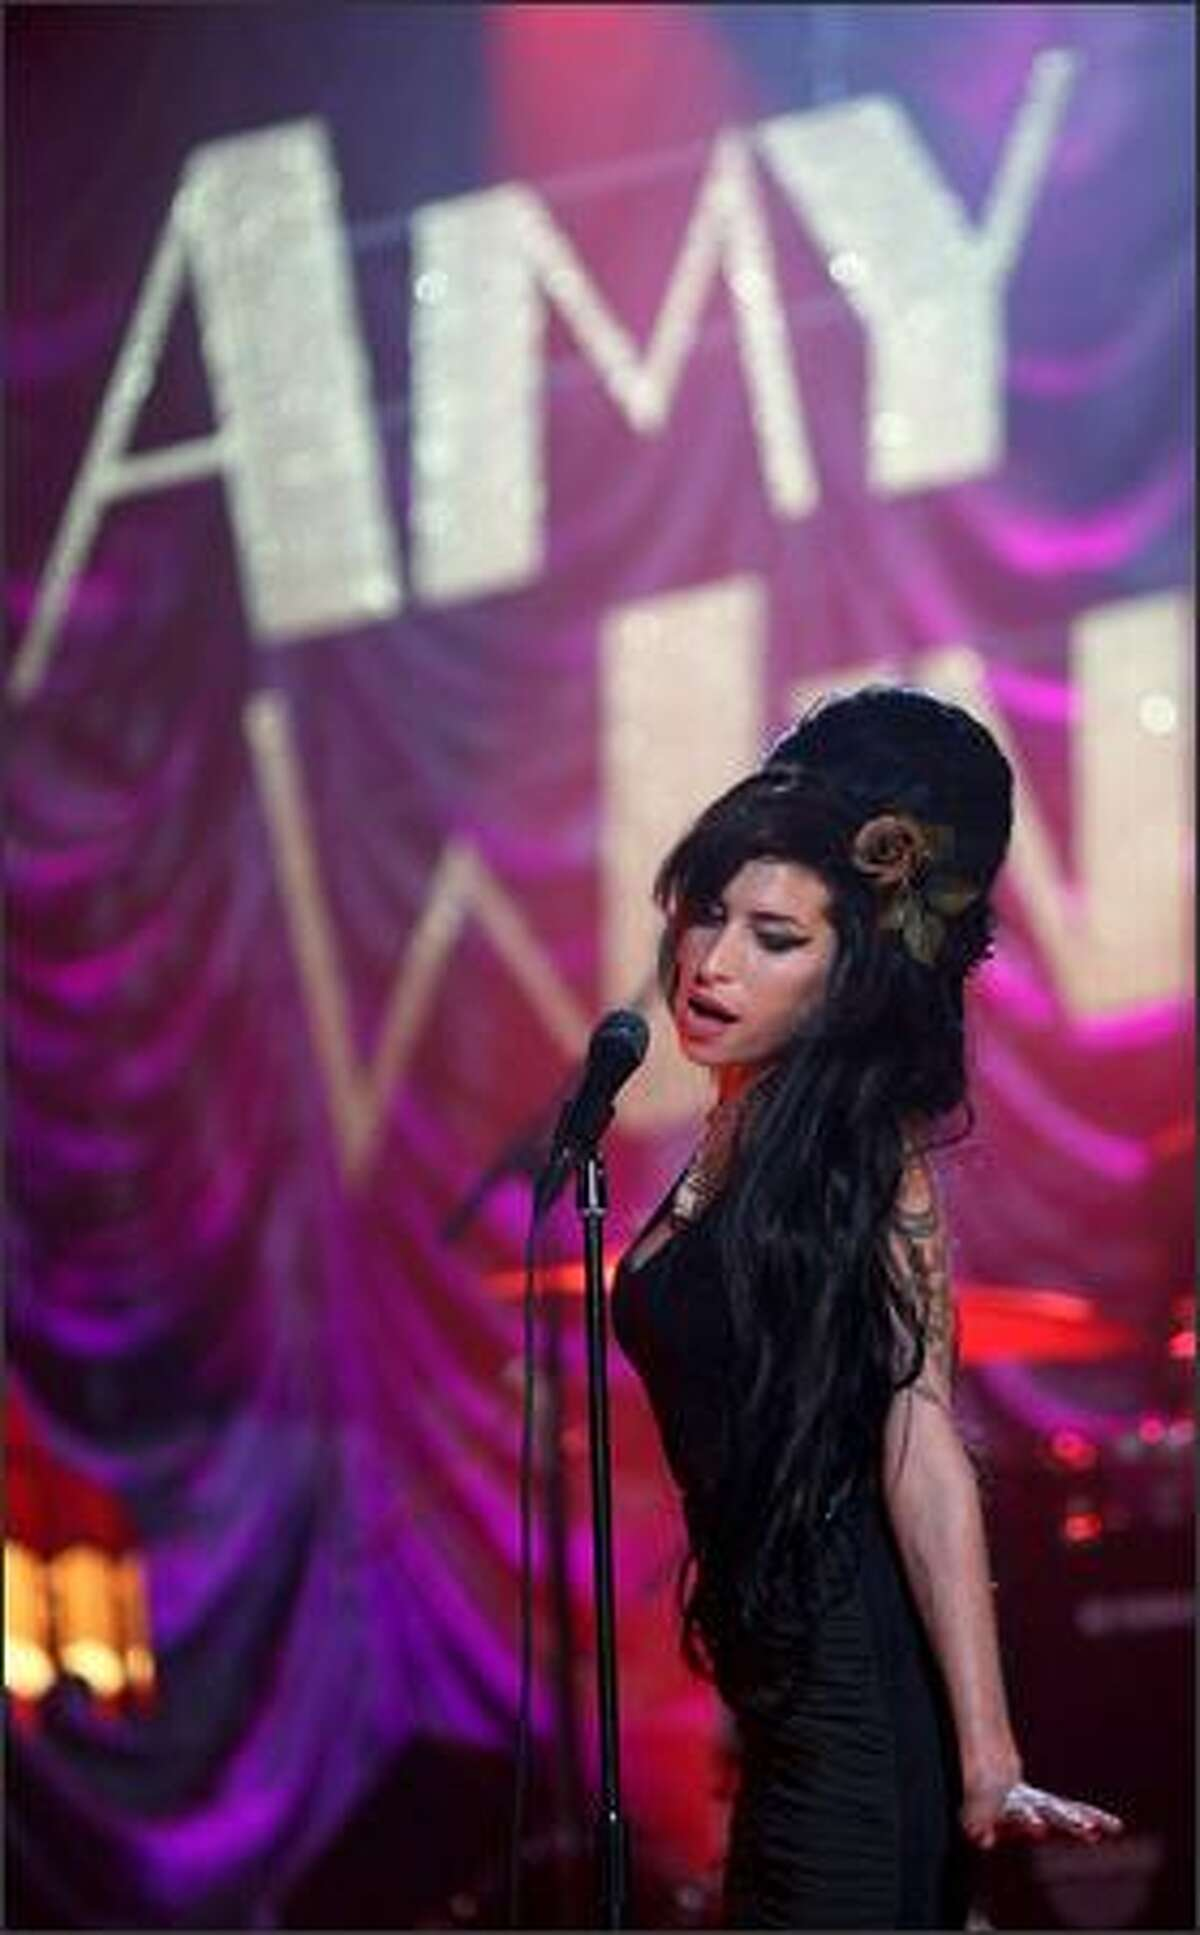 Amy Winehouse performs for the Grammy Awards via video link. Winehouse won five awards from her 6 nominations -- record of the year, best new artist, song of the year, pop vocal album and female pop vocal performance.